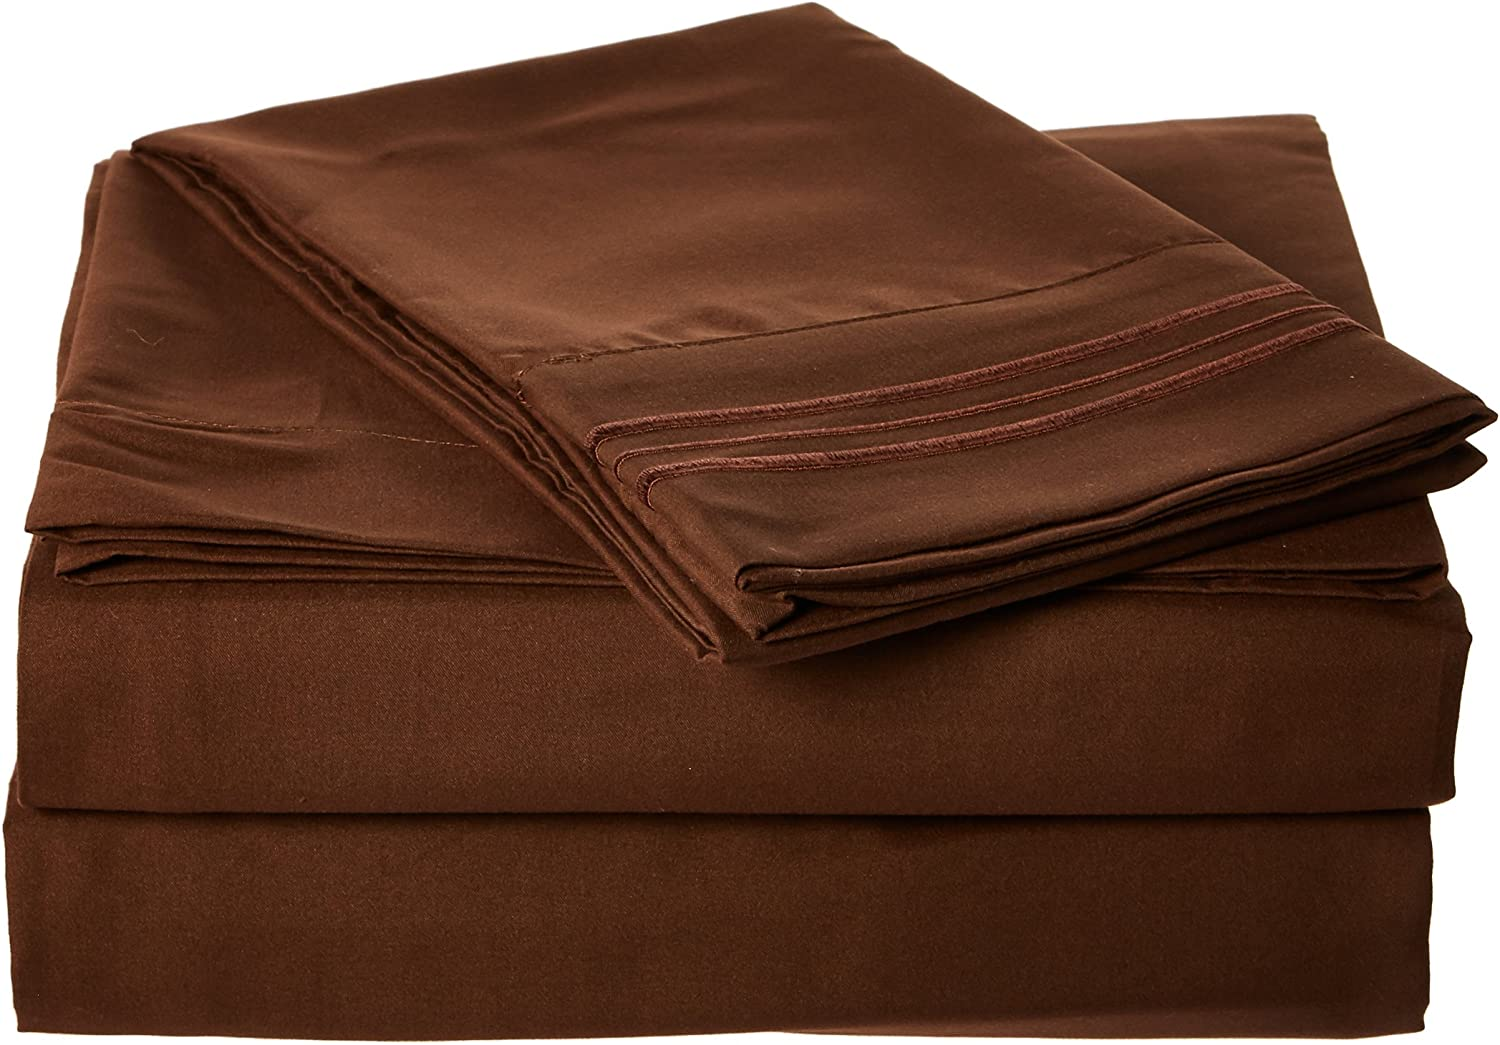 Sweet Home Collection 3 Piece 2000 12 Colors Collection Egyptian Quality Deep Pocket Bed Sheet Set, Twin, Brown